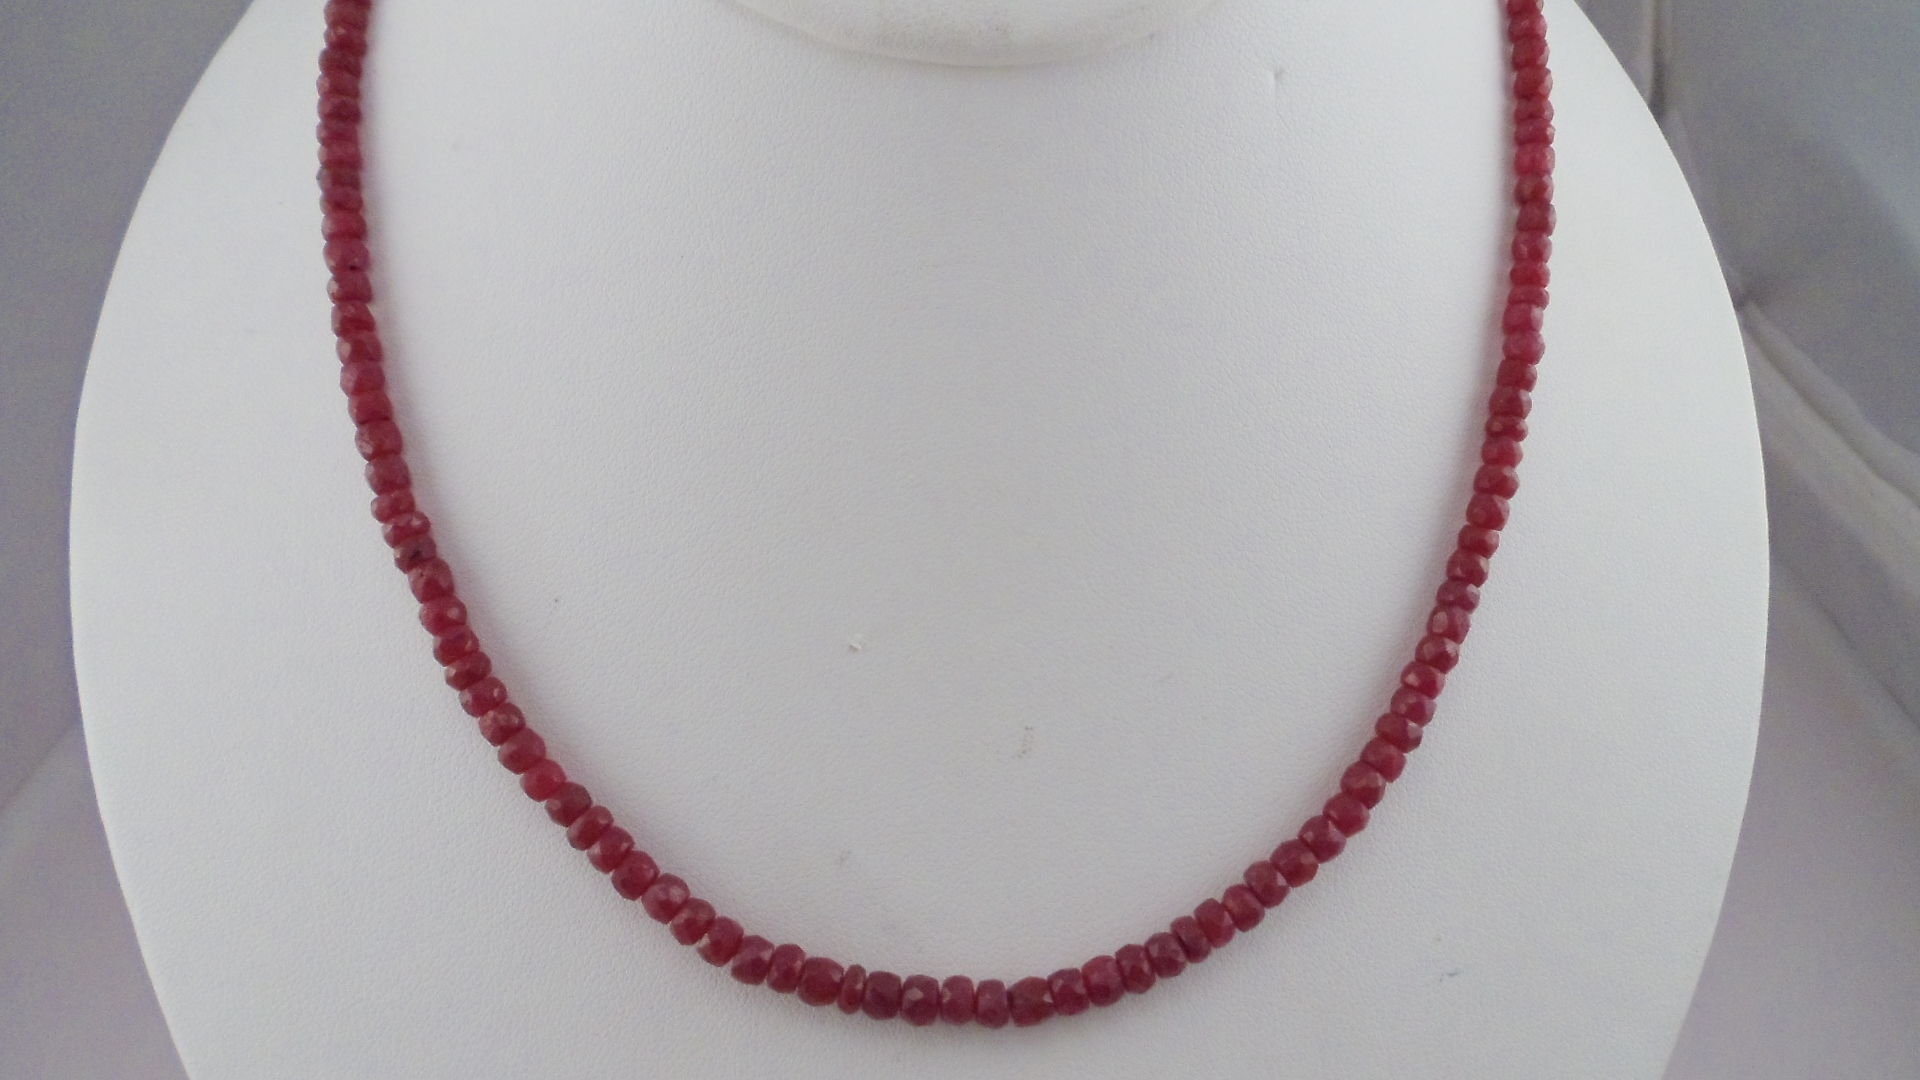 Ruby Jewelry & Spinel Jewelry - Beautiful Necklaces & Loosestones